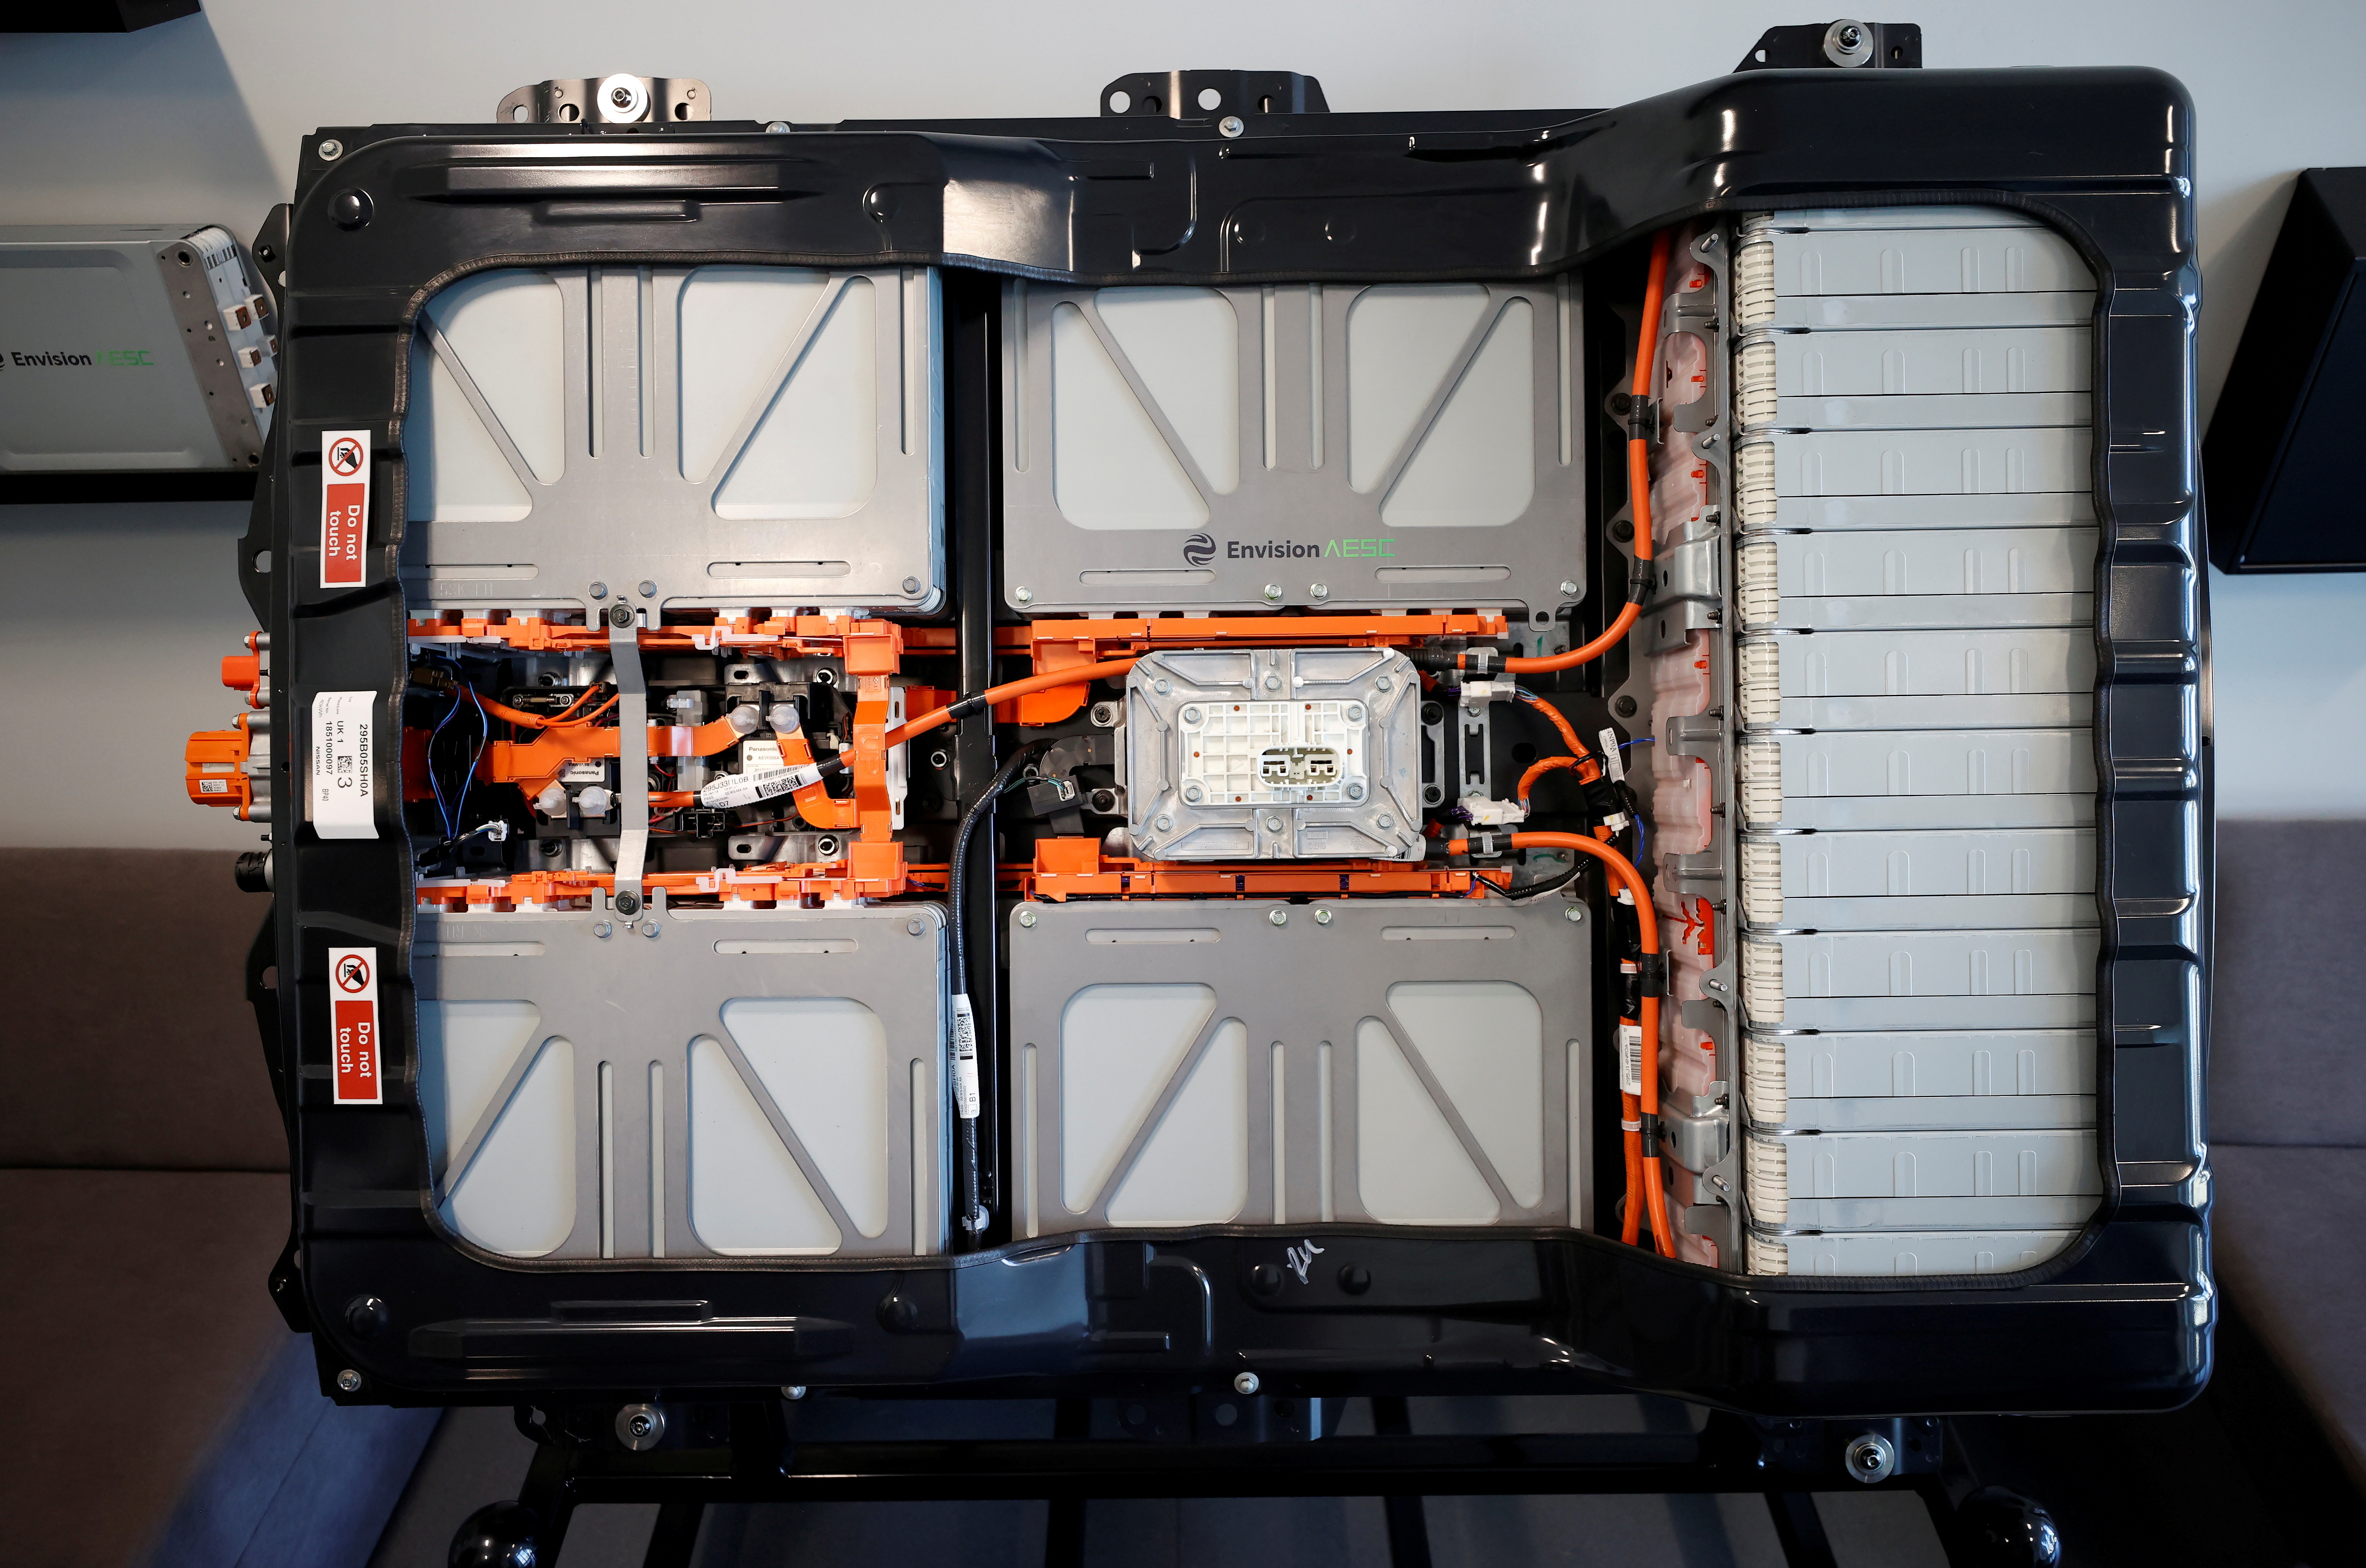 A cross-section of a completed battery for a Nissan Leaf car is seen inside the Envision battery manufacturing plant at Nissan's Sunderland factory, Britain, July 1, 2021. REUTERS/Phil Noble -/File Photo